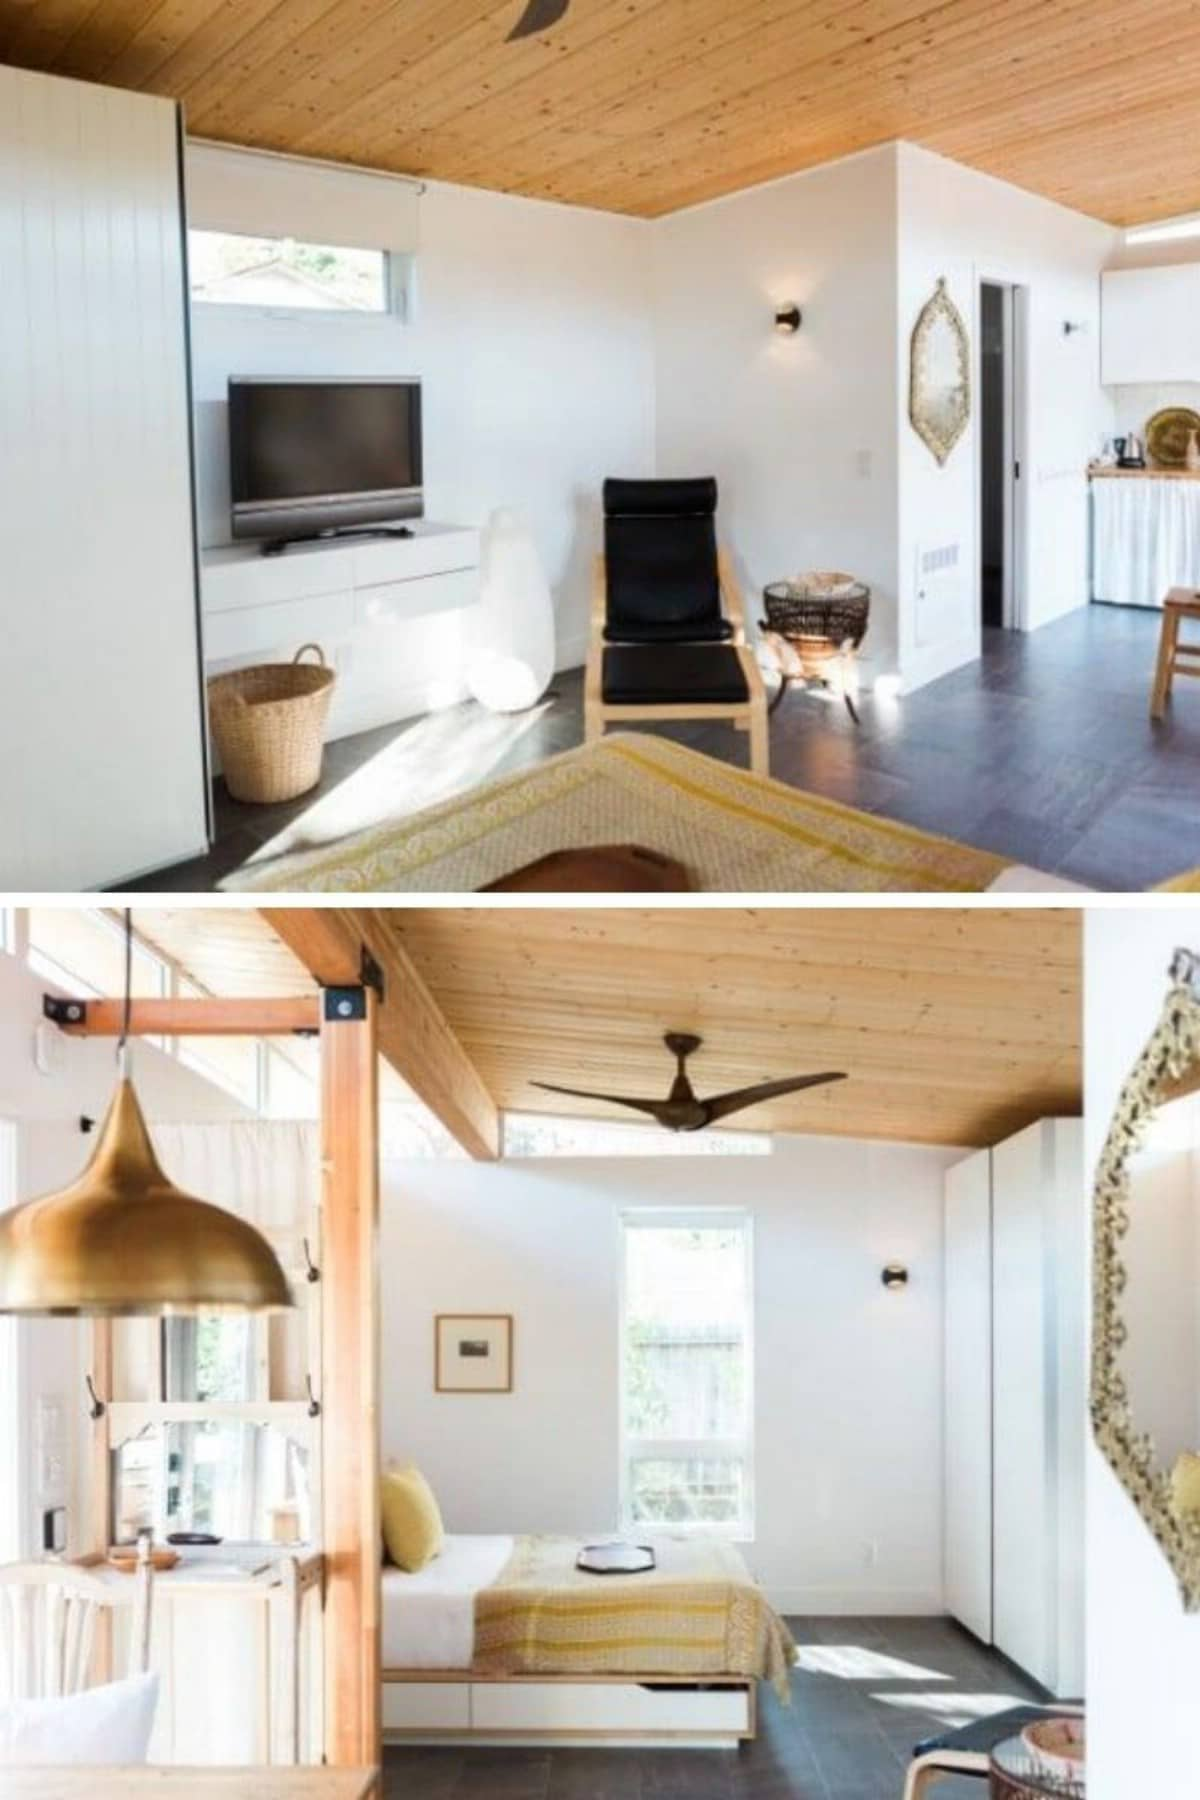 Spacious Tiny Guest House in San Rafael, CA